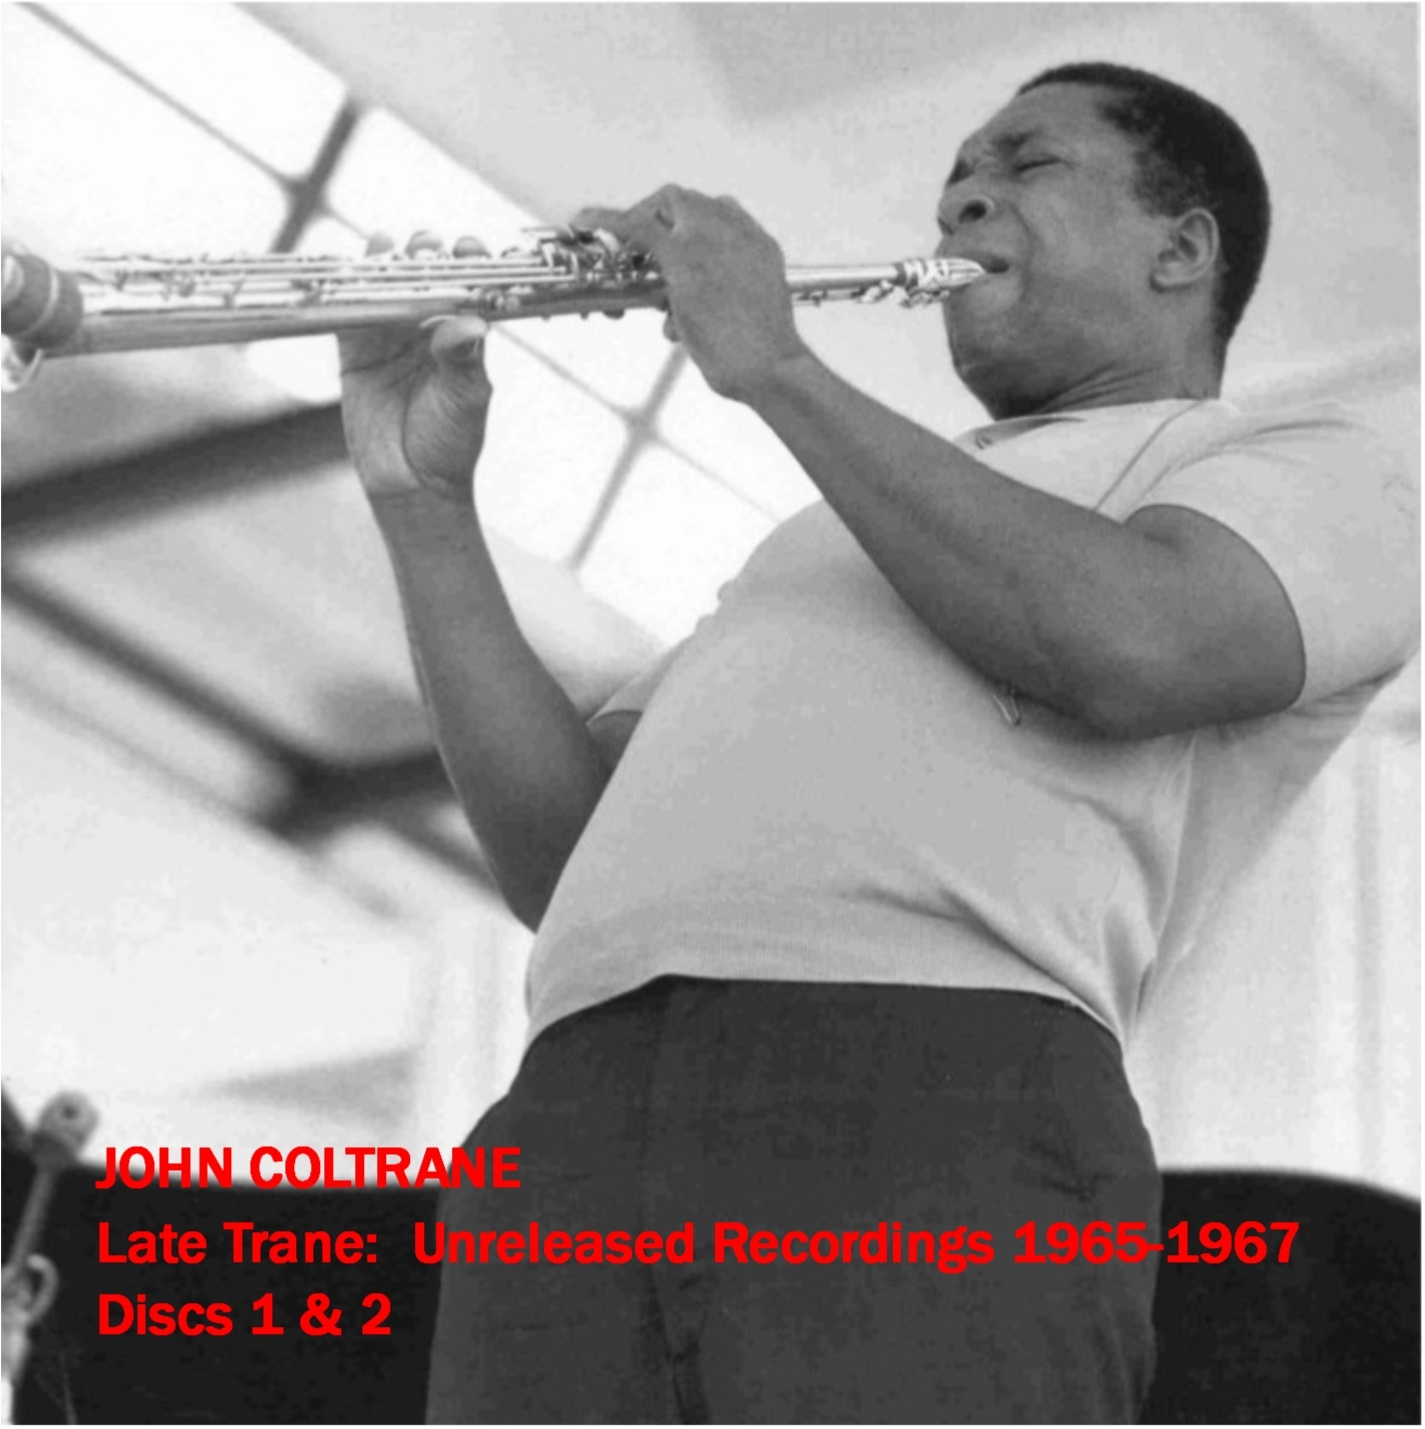 JohnColtrane1965-1967LateTraneCollection_pt1.jpg